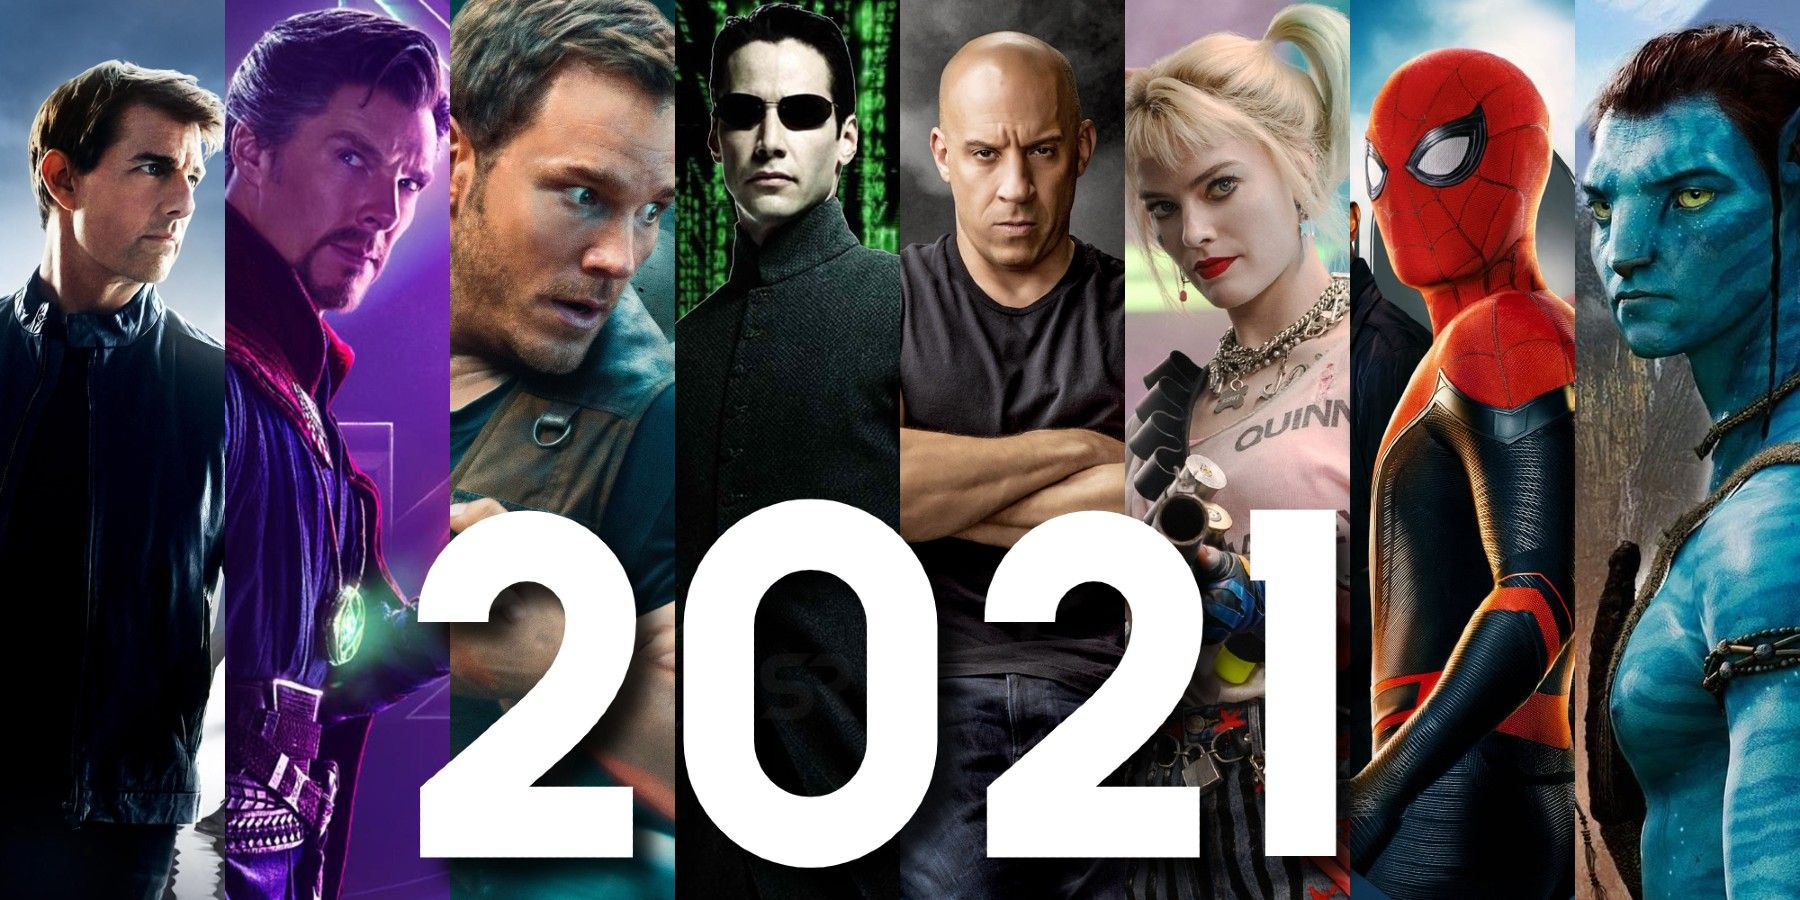 2021 movie release calendar looks dates